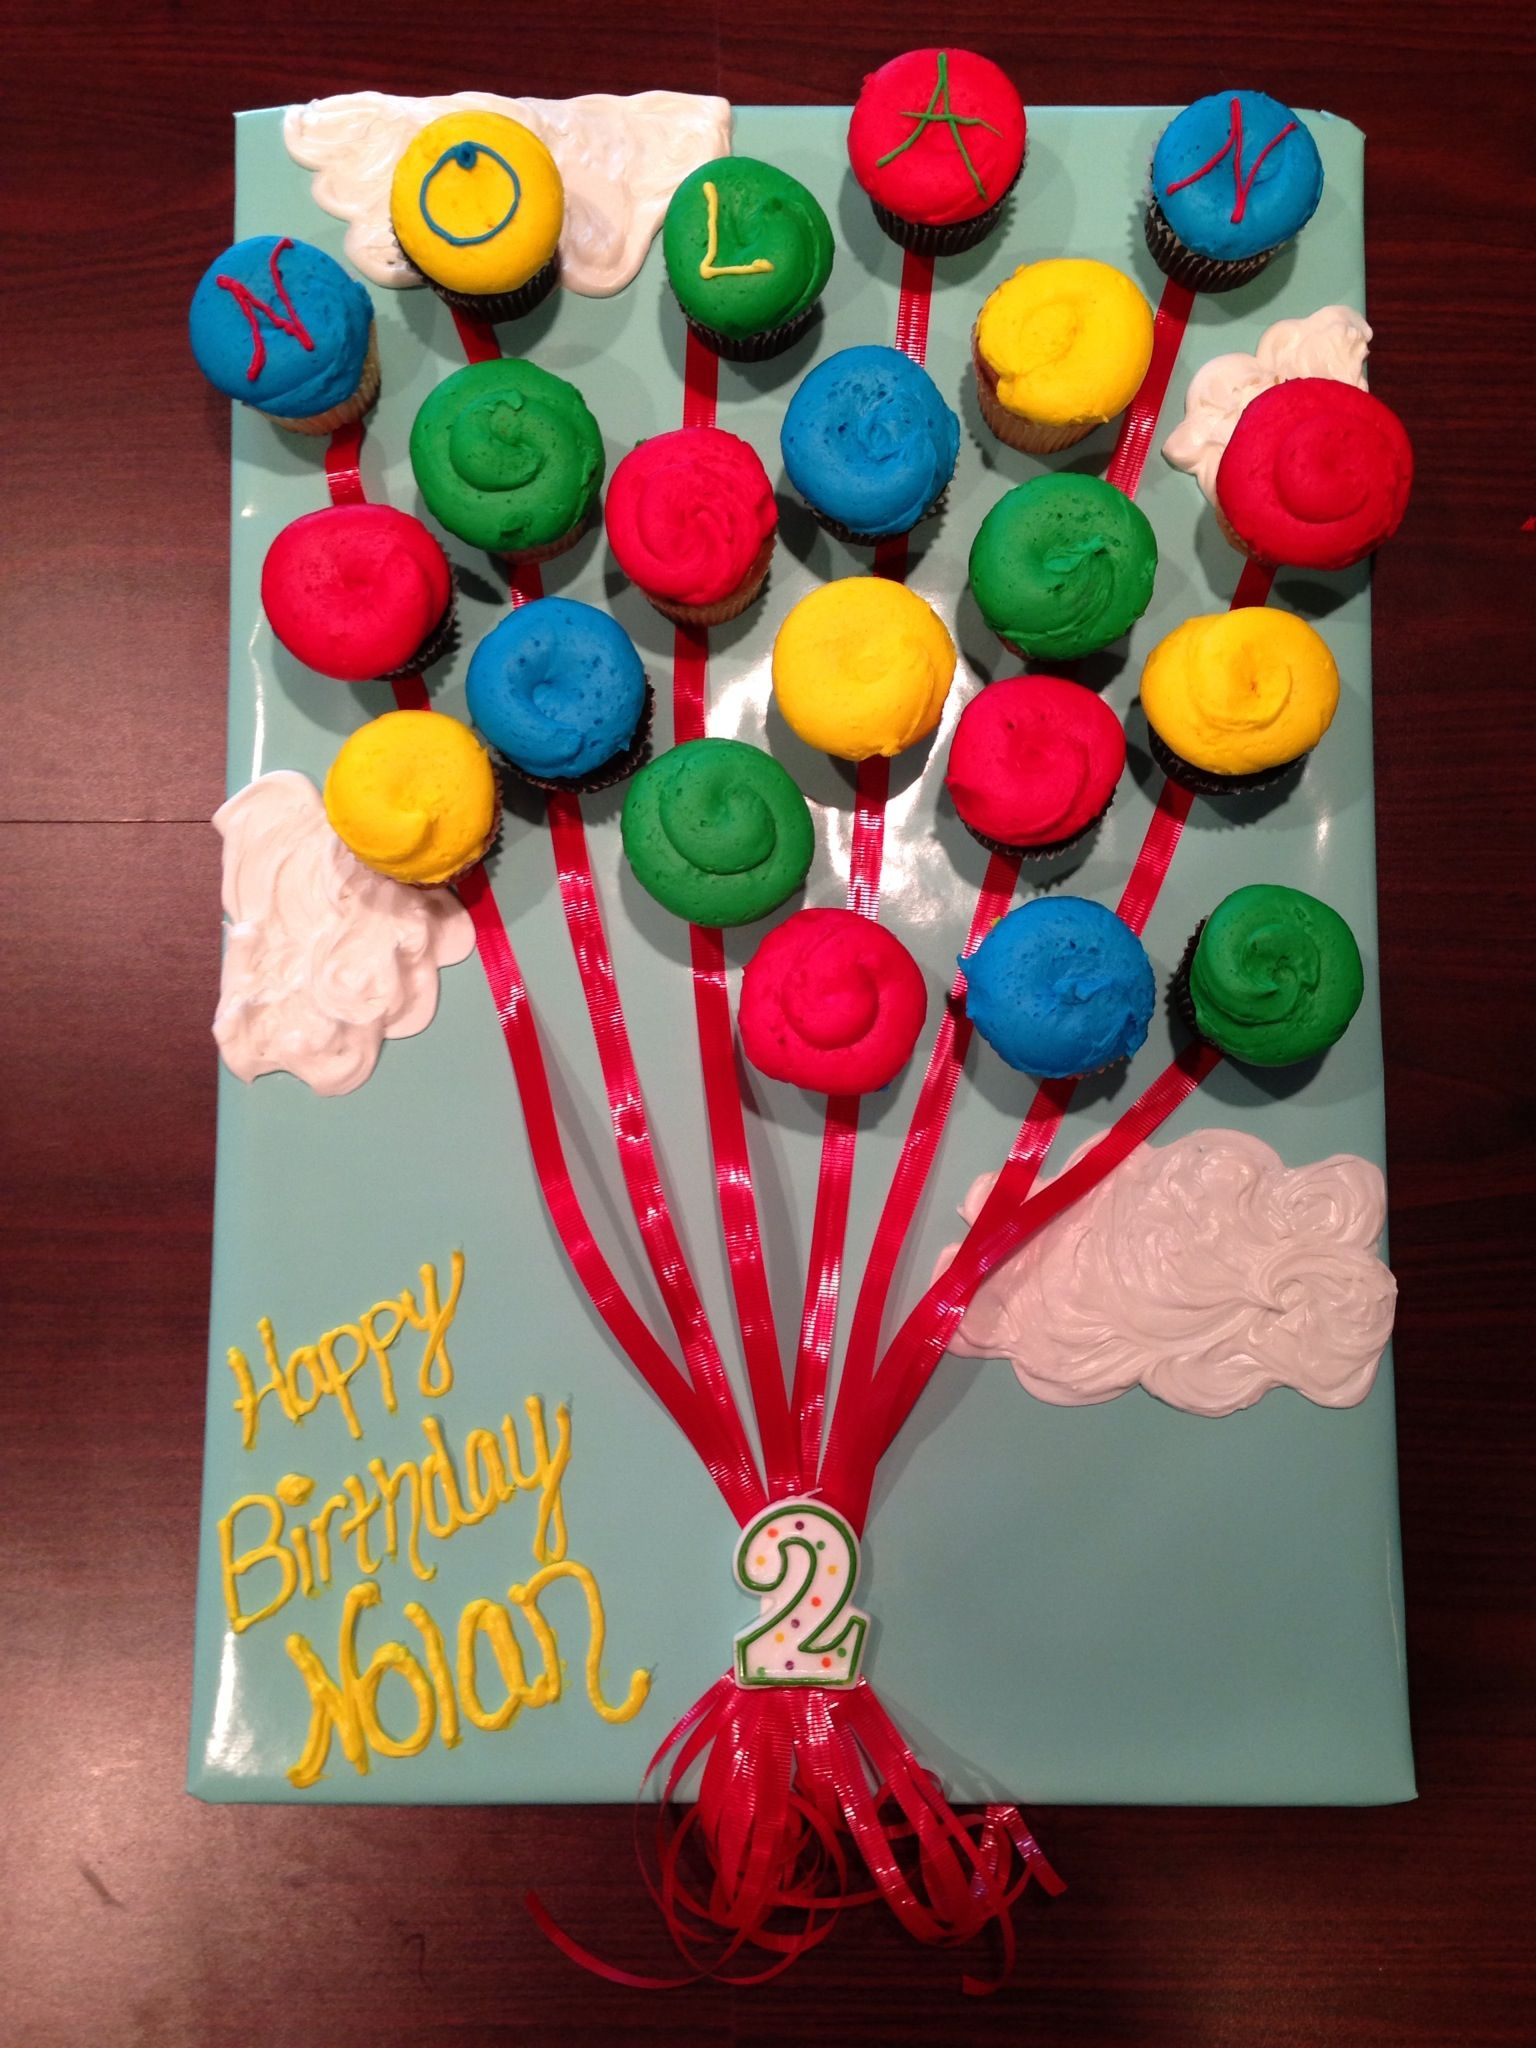 Pin By Shelley Carbonara On Balloon Party Pinterest Birthday